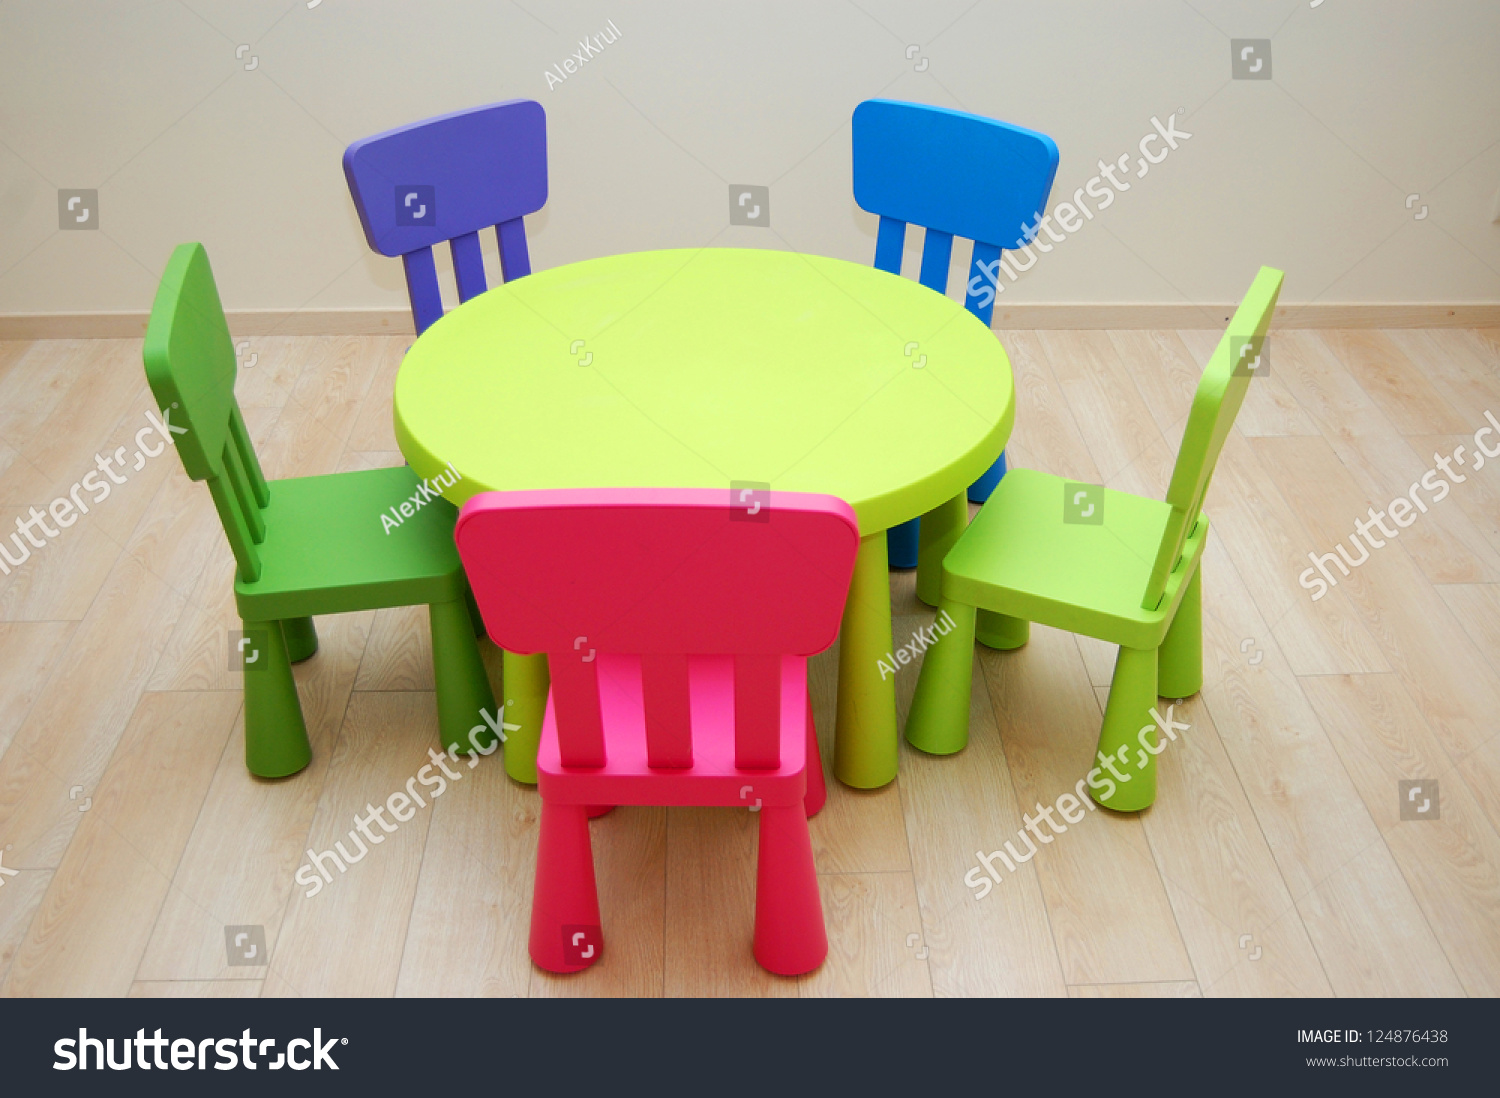 Montessori Kindergarten Preschool Classroom Table Chairs